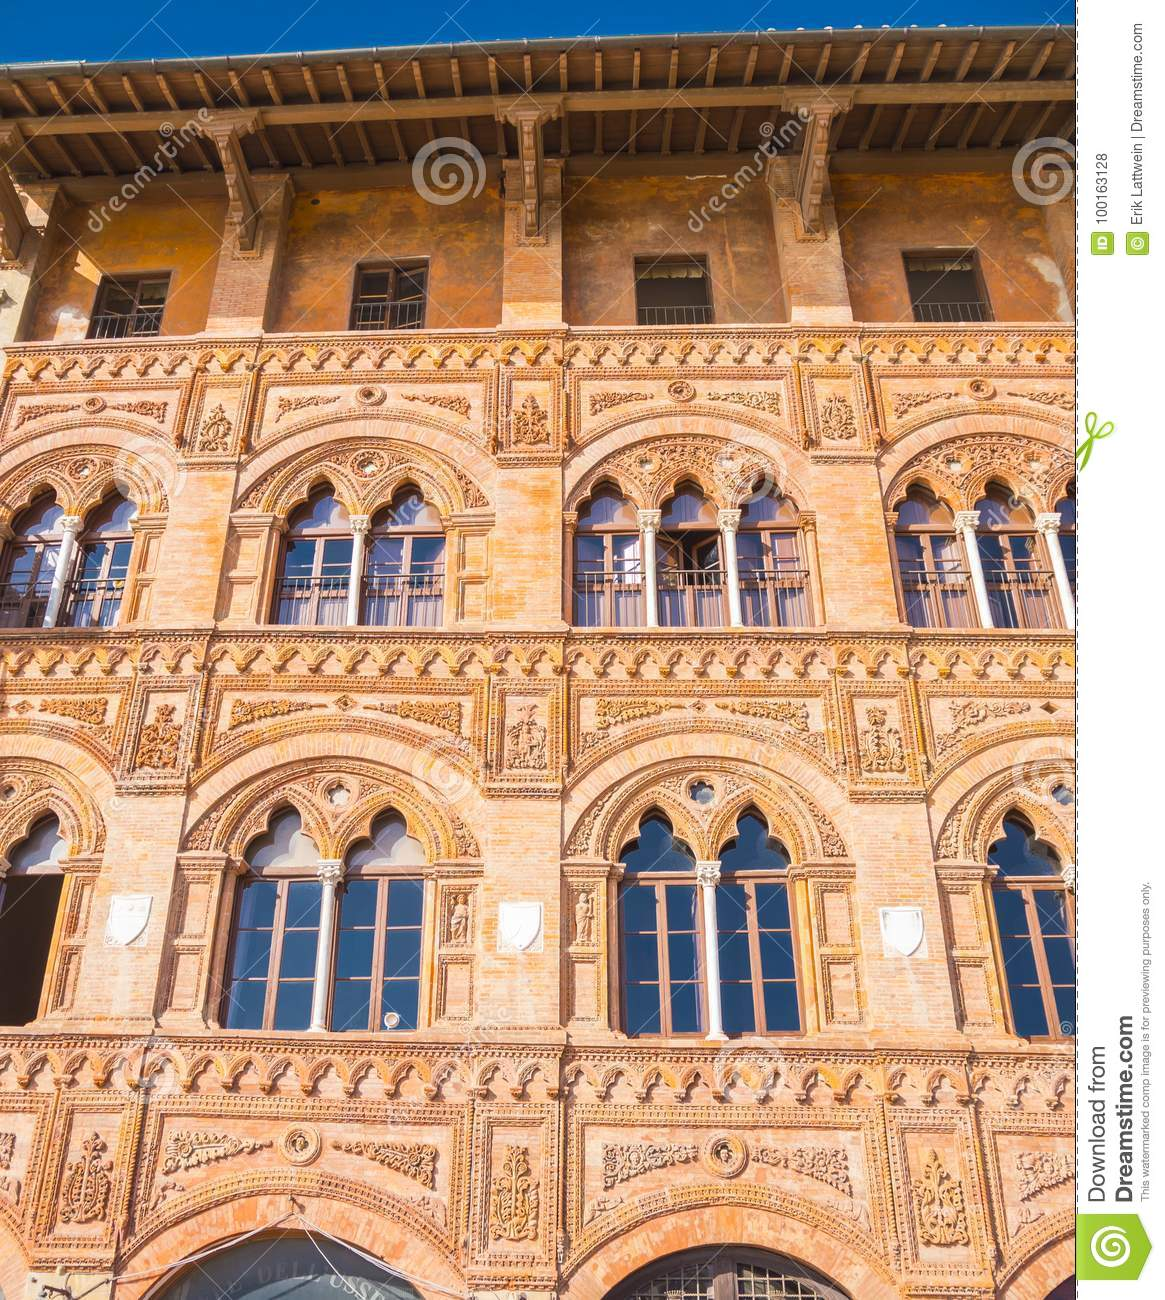 Amazing mansion in the city of Pisa - beautiful house facade